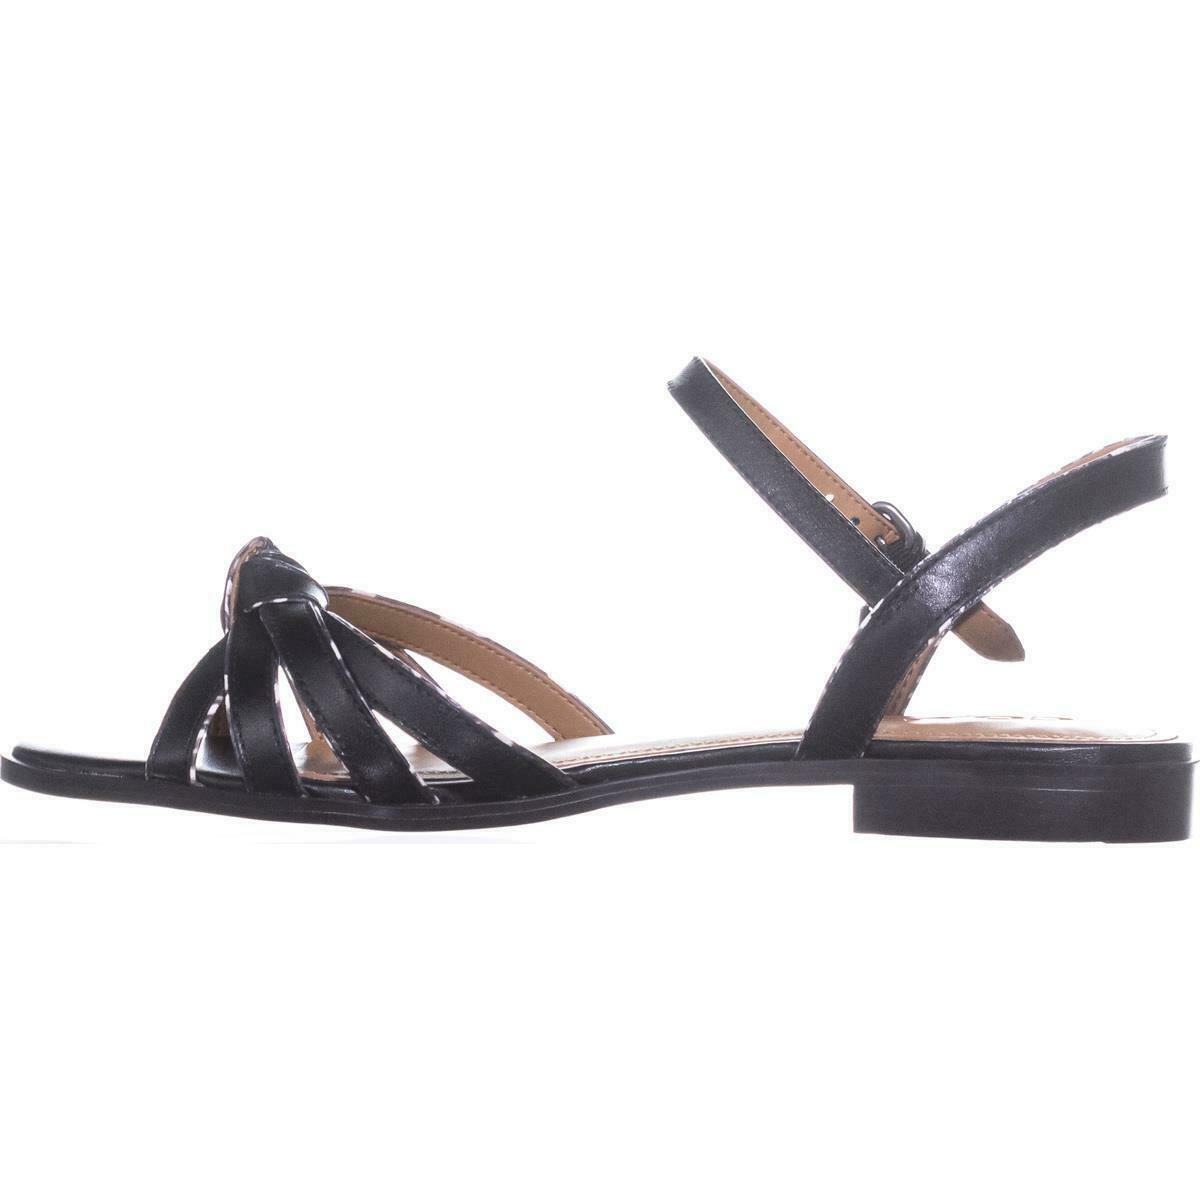 Coach Sophia Ankle Strap Flat Sandals, Black/Black White, 8 US / 38 EU